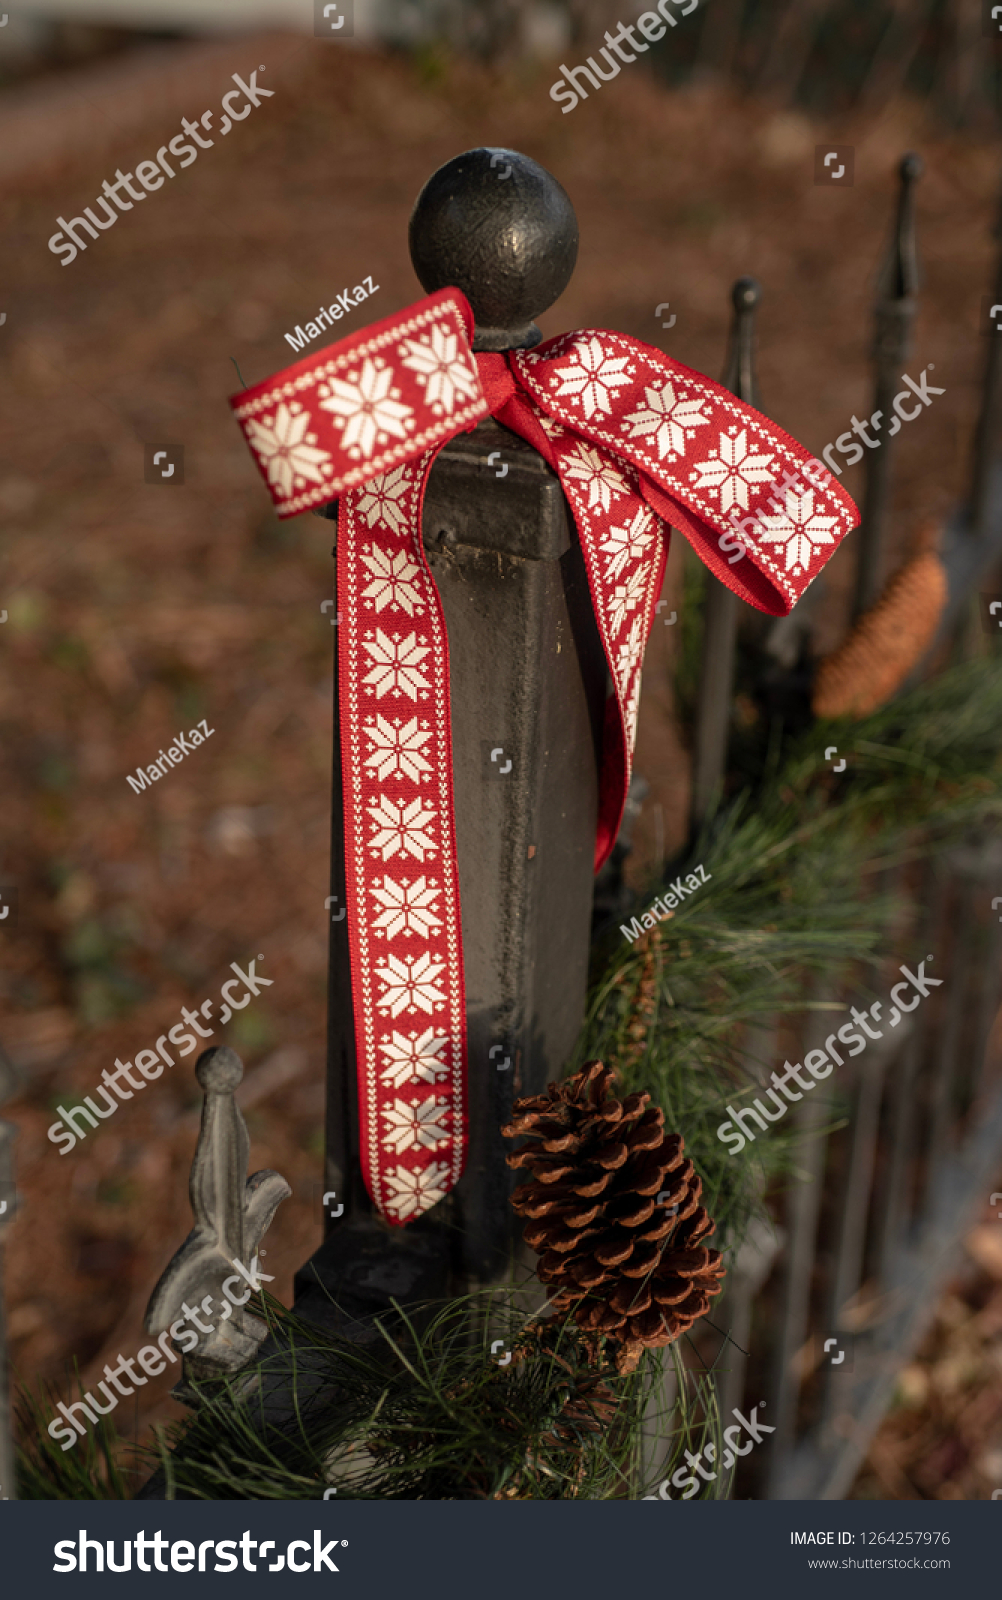 Outdoor Christmas Ribbon.Red Ribbon Outdoor Christmas Decorations On Stock Photo